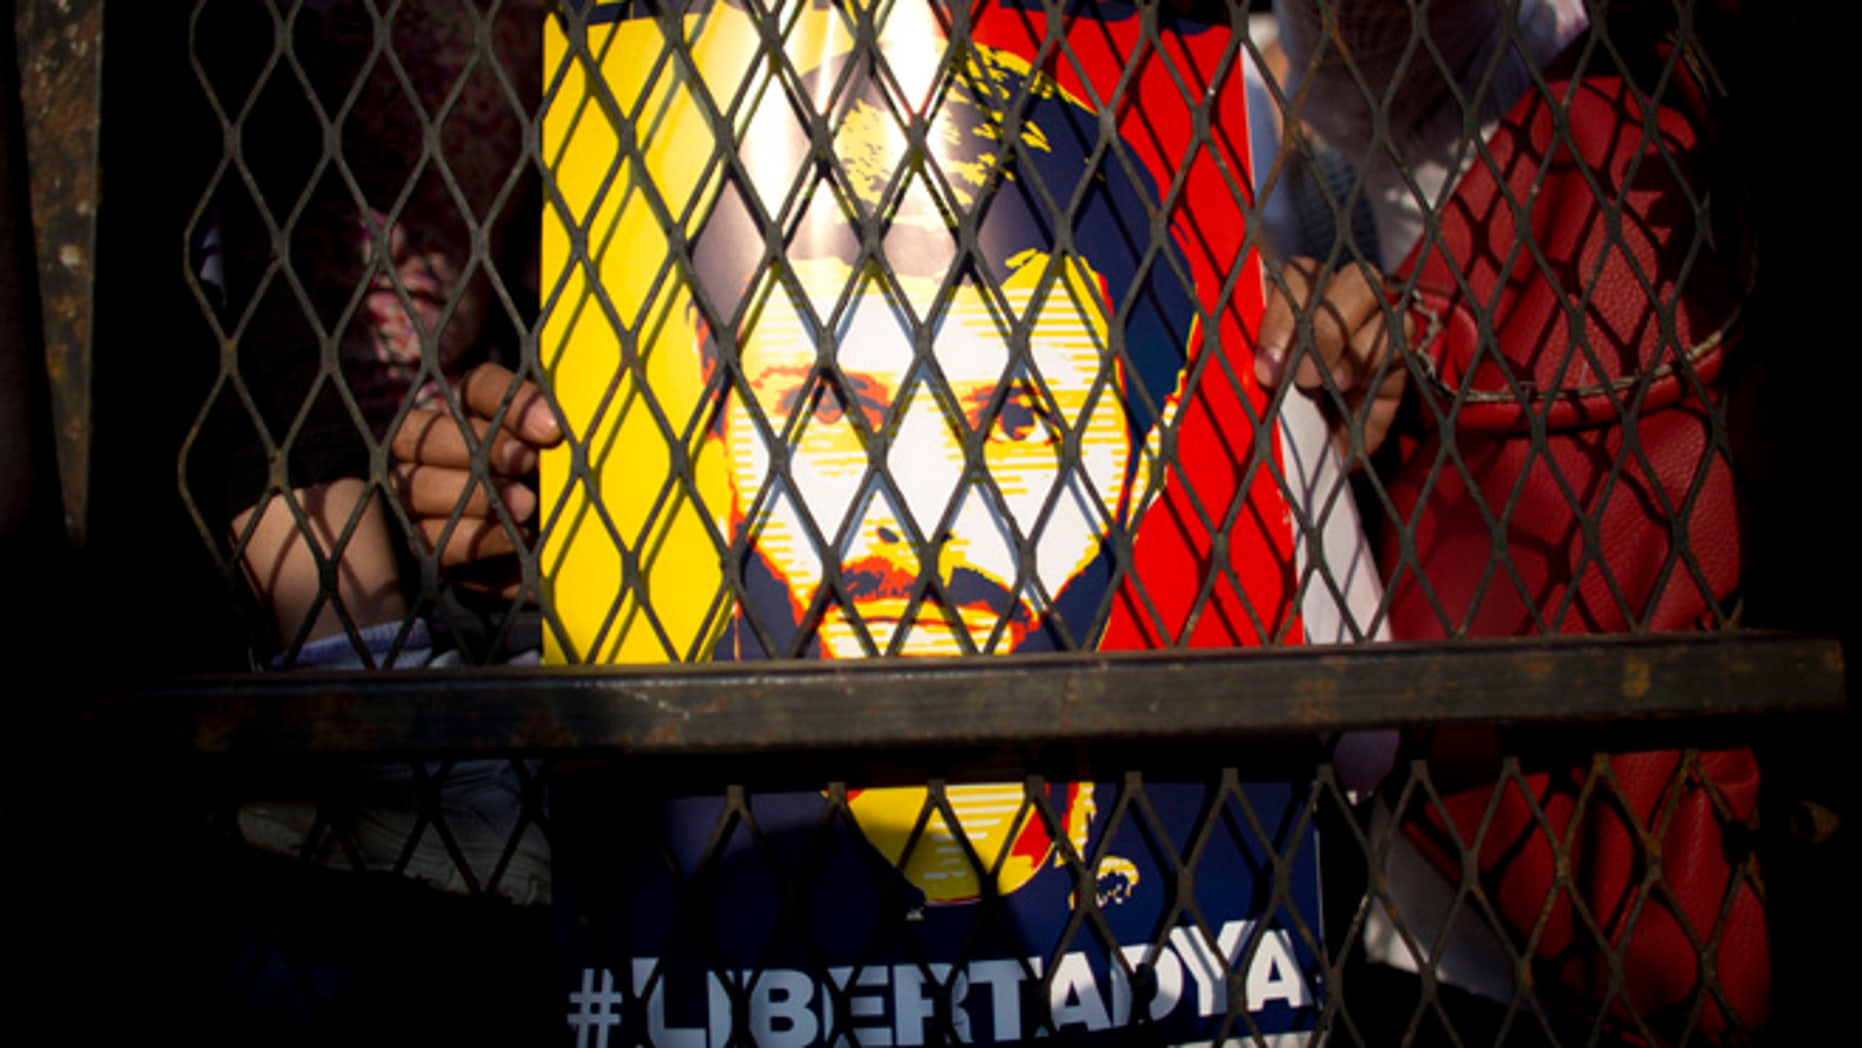 FILE - In this Feb. 20, 2016 file photo, supporters of Venezuela's jailed opposition leader Leopoldo Lopez hold posters of him during a protest demanding the release of Lopez and other jailed opposition leaders, on the second anniversary of his imprisonment, in Caracas, Venezuela. Spain's former Prime Minister Jose Luis Rodriguez Zapatero had a surprise jailhouse meeting with Lopez on June 4, 2016. It's the first time an outside visitor besides Lopez's family or lawyers have met with Lopez in the military prison where he's been held for over two years.  (AP Photo/Ariana Cubillos, File)